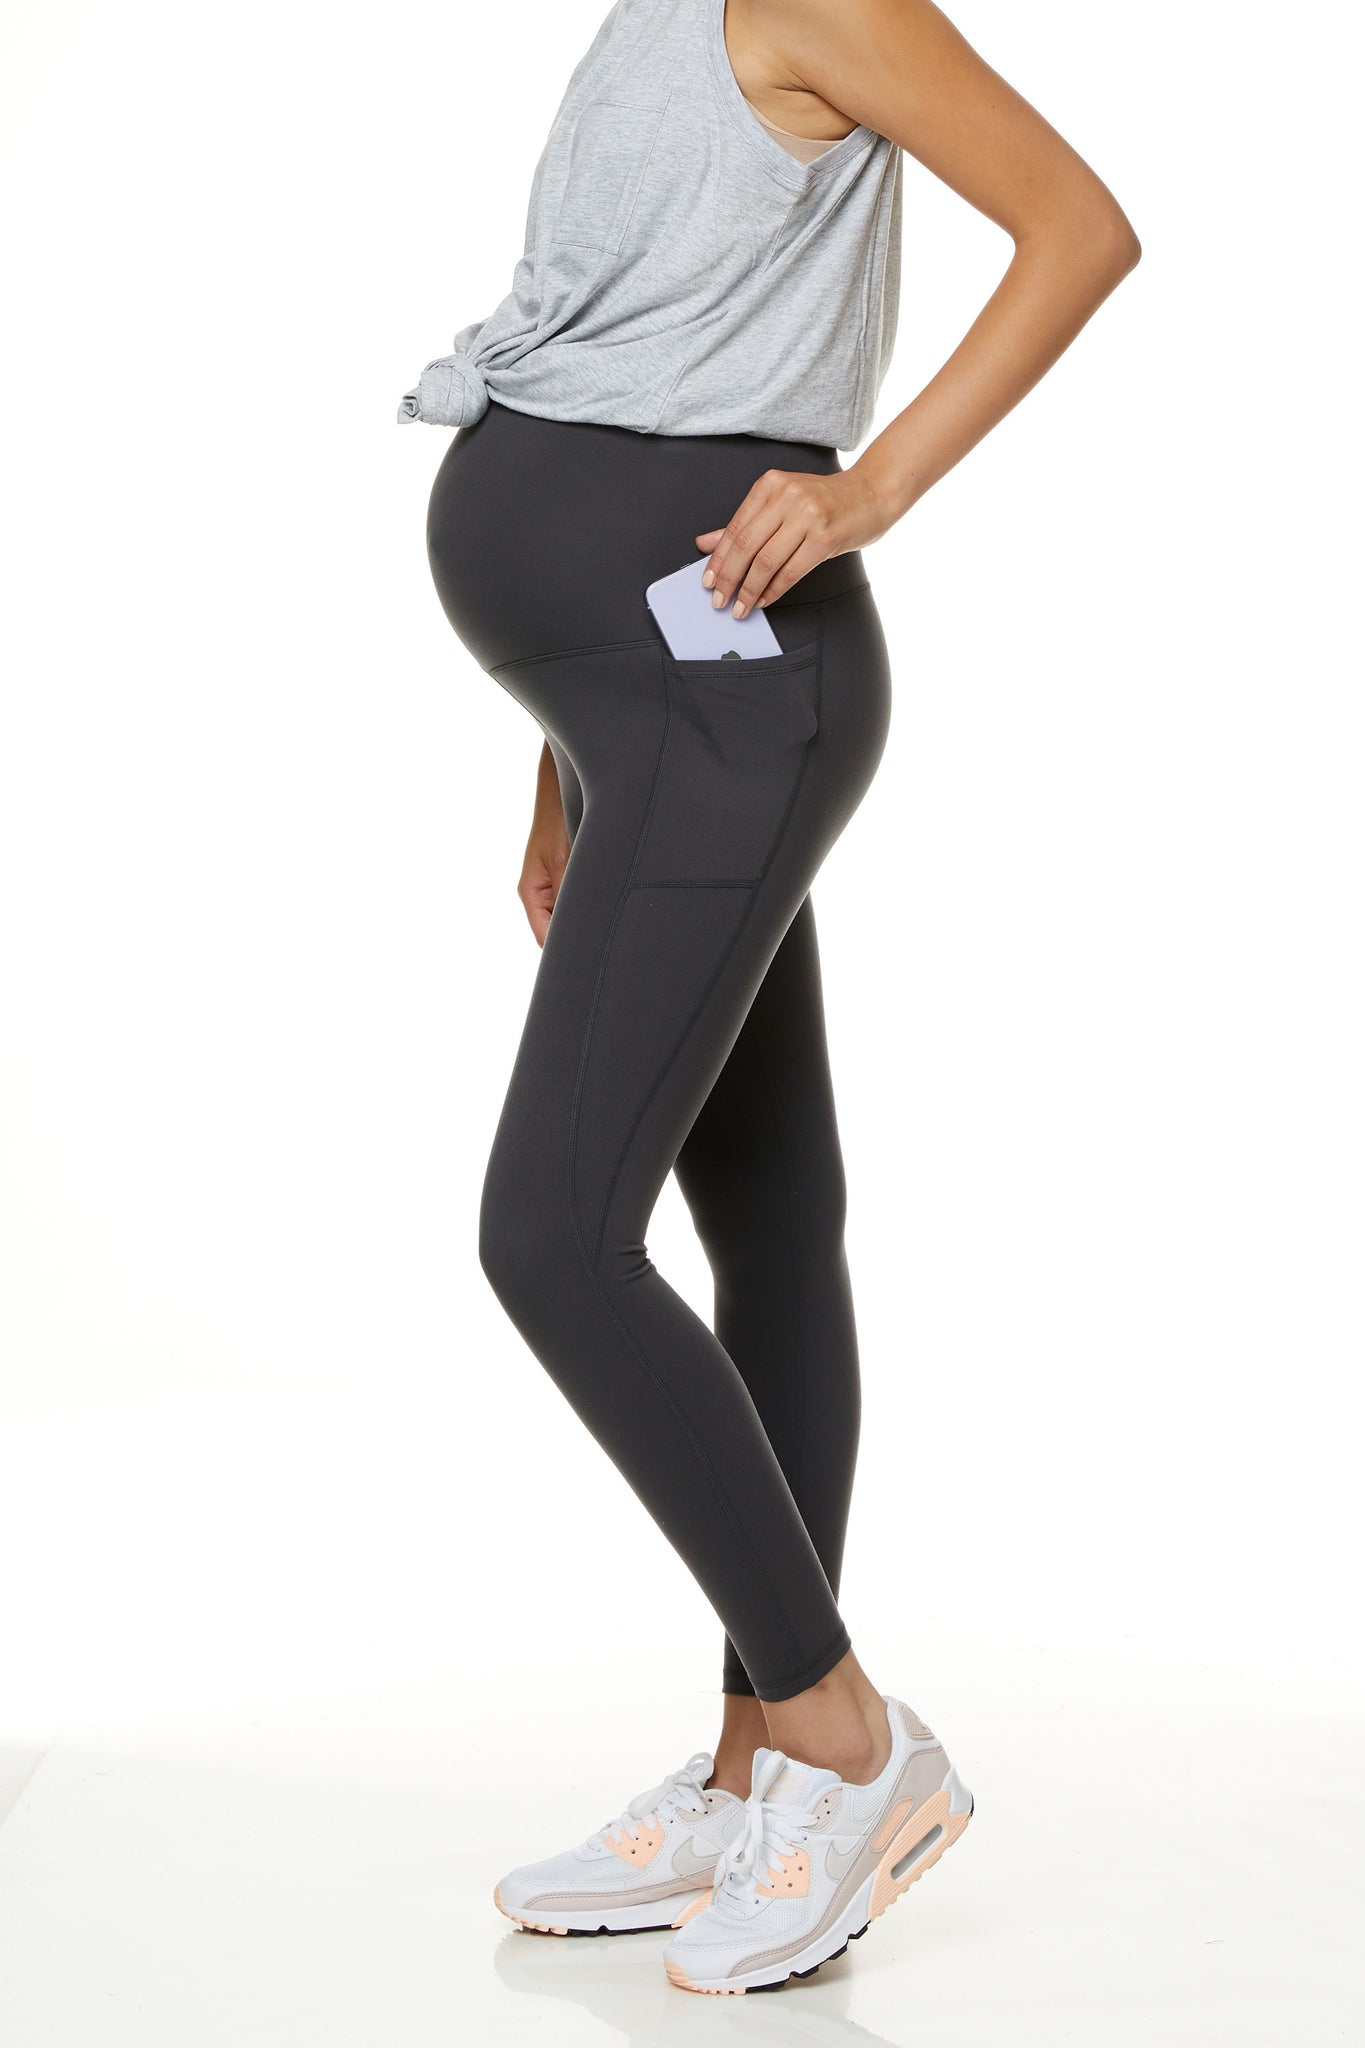 Maternity Leggings Australia 1